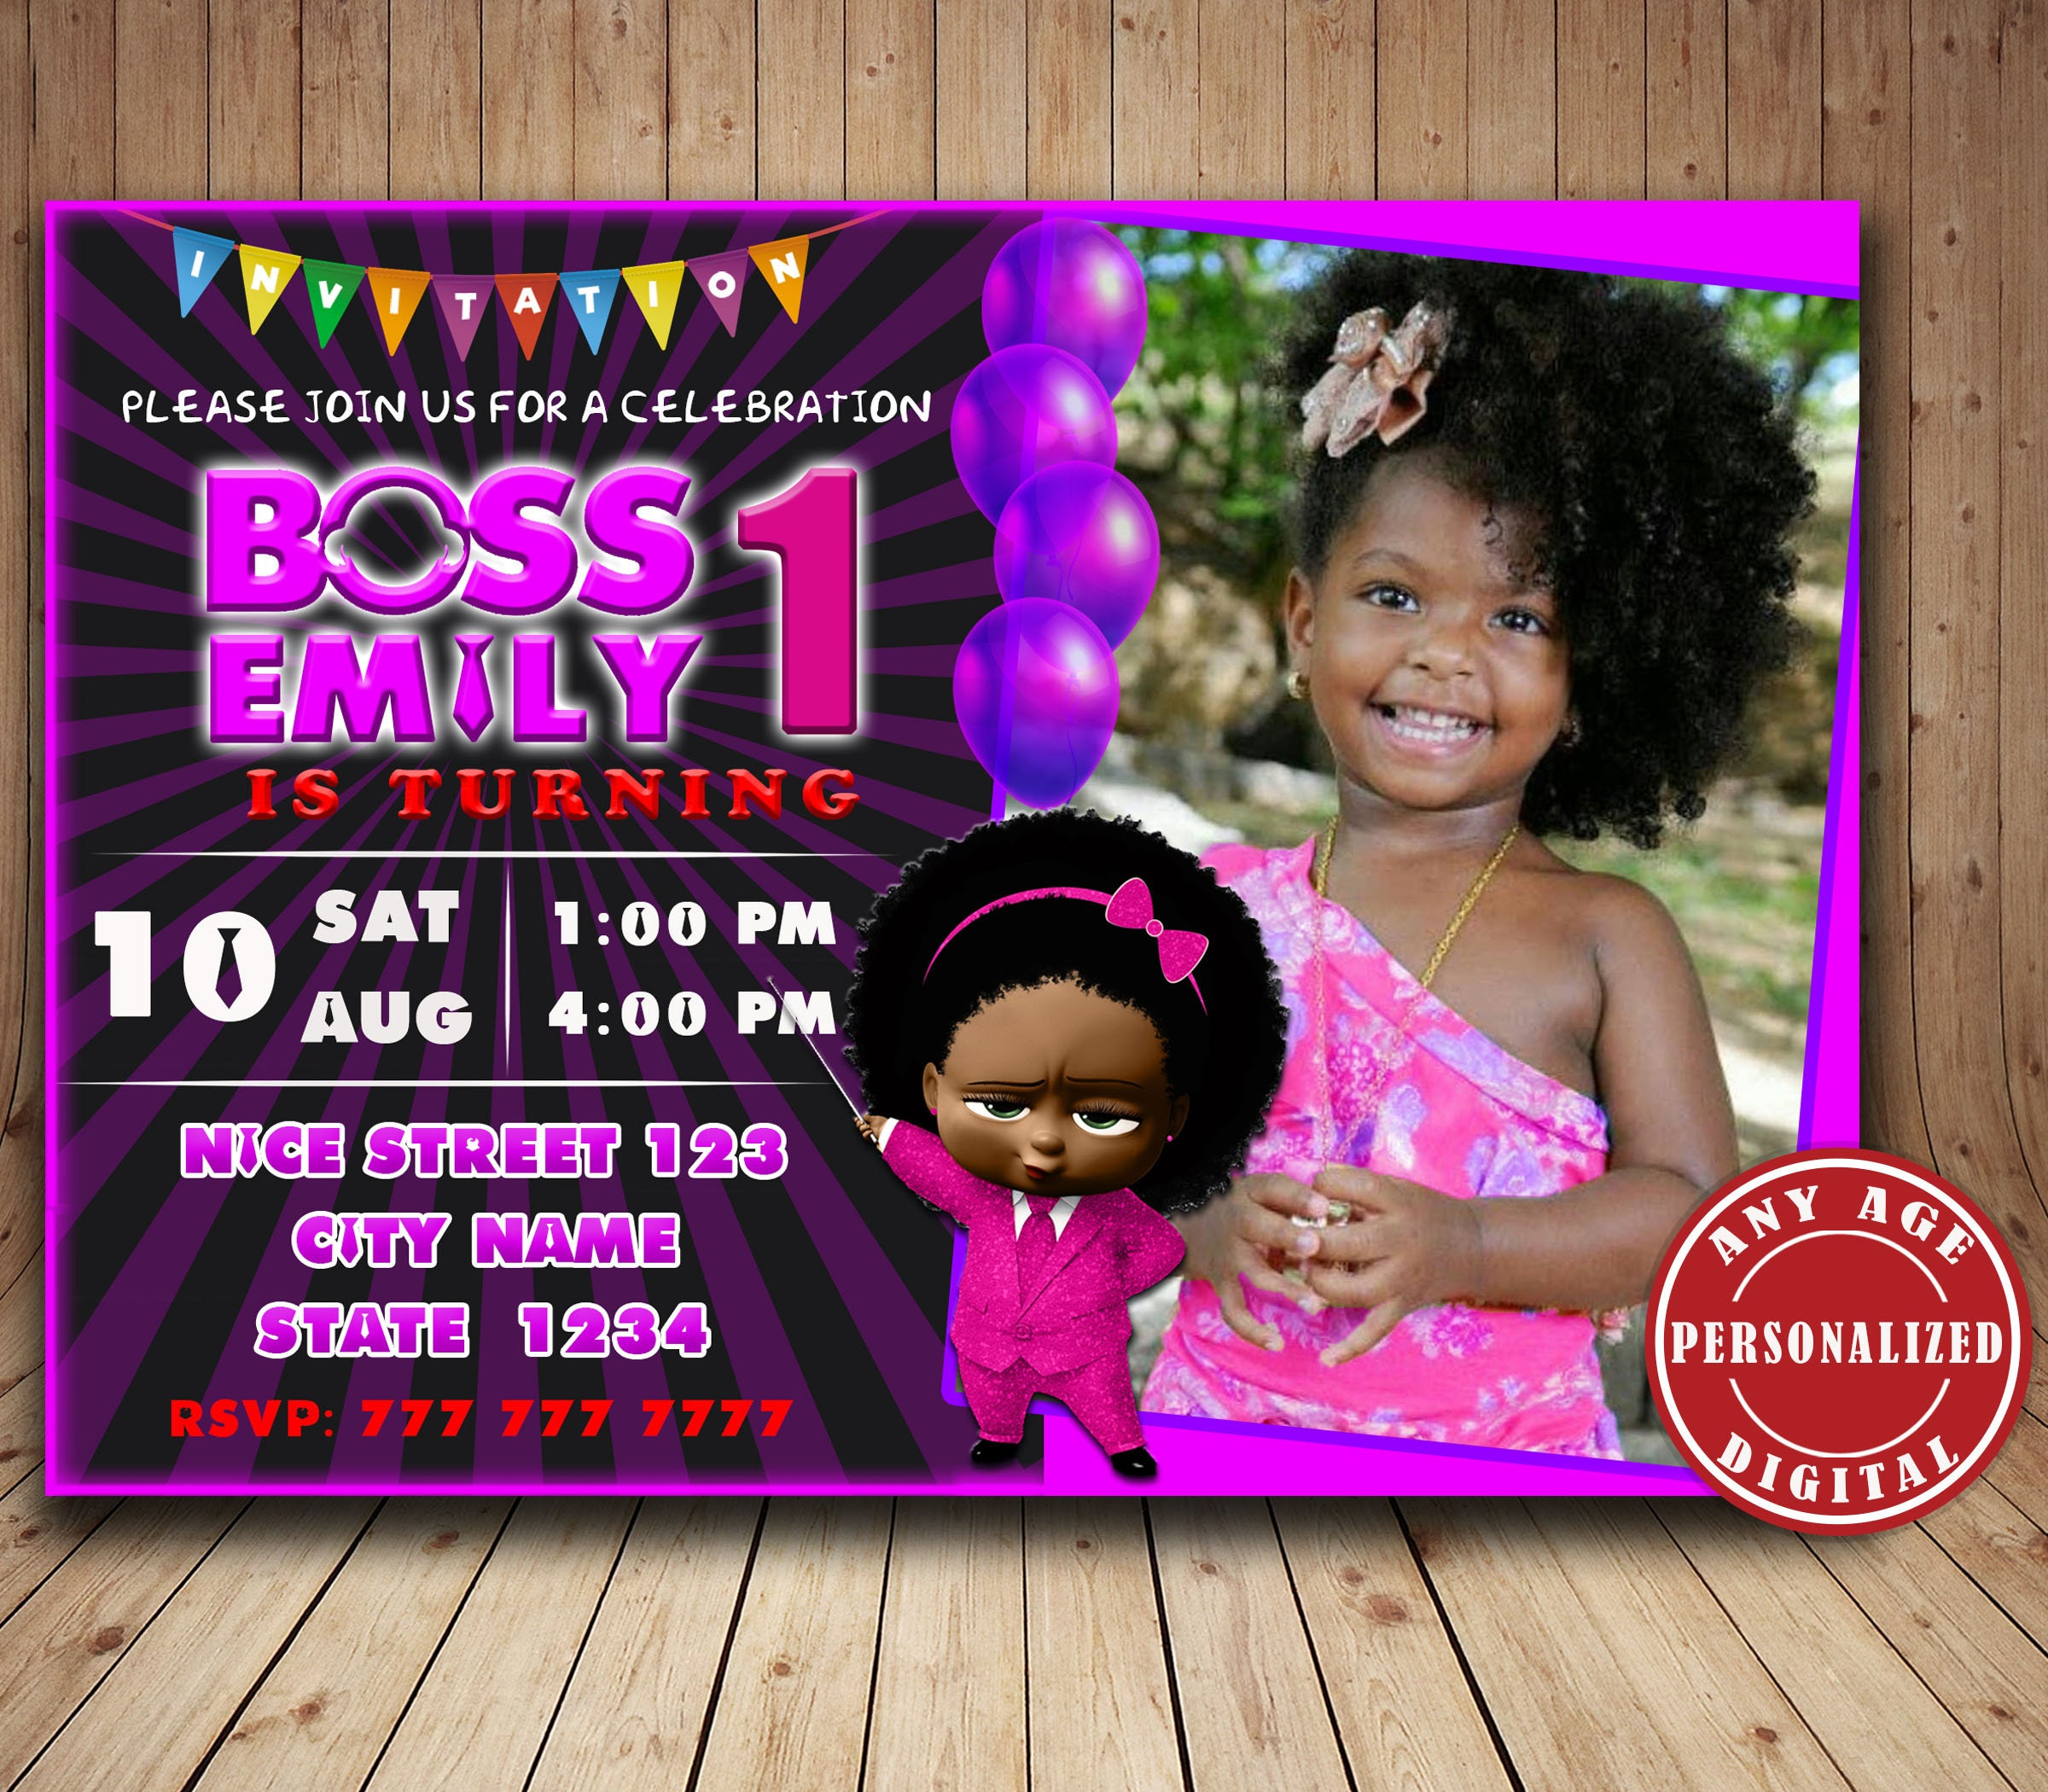 Digital African American Boss Baby Girl Birthday Invitation Personalized Boss Baby Party Birthday Decorations Boss Baby Printables Invit